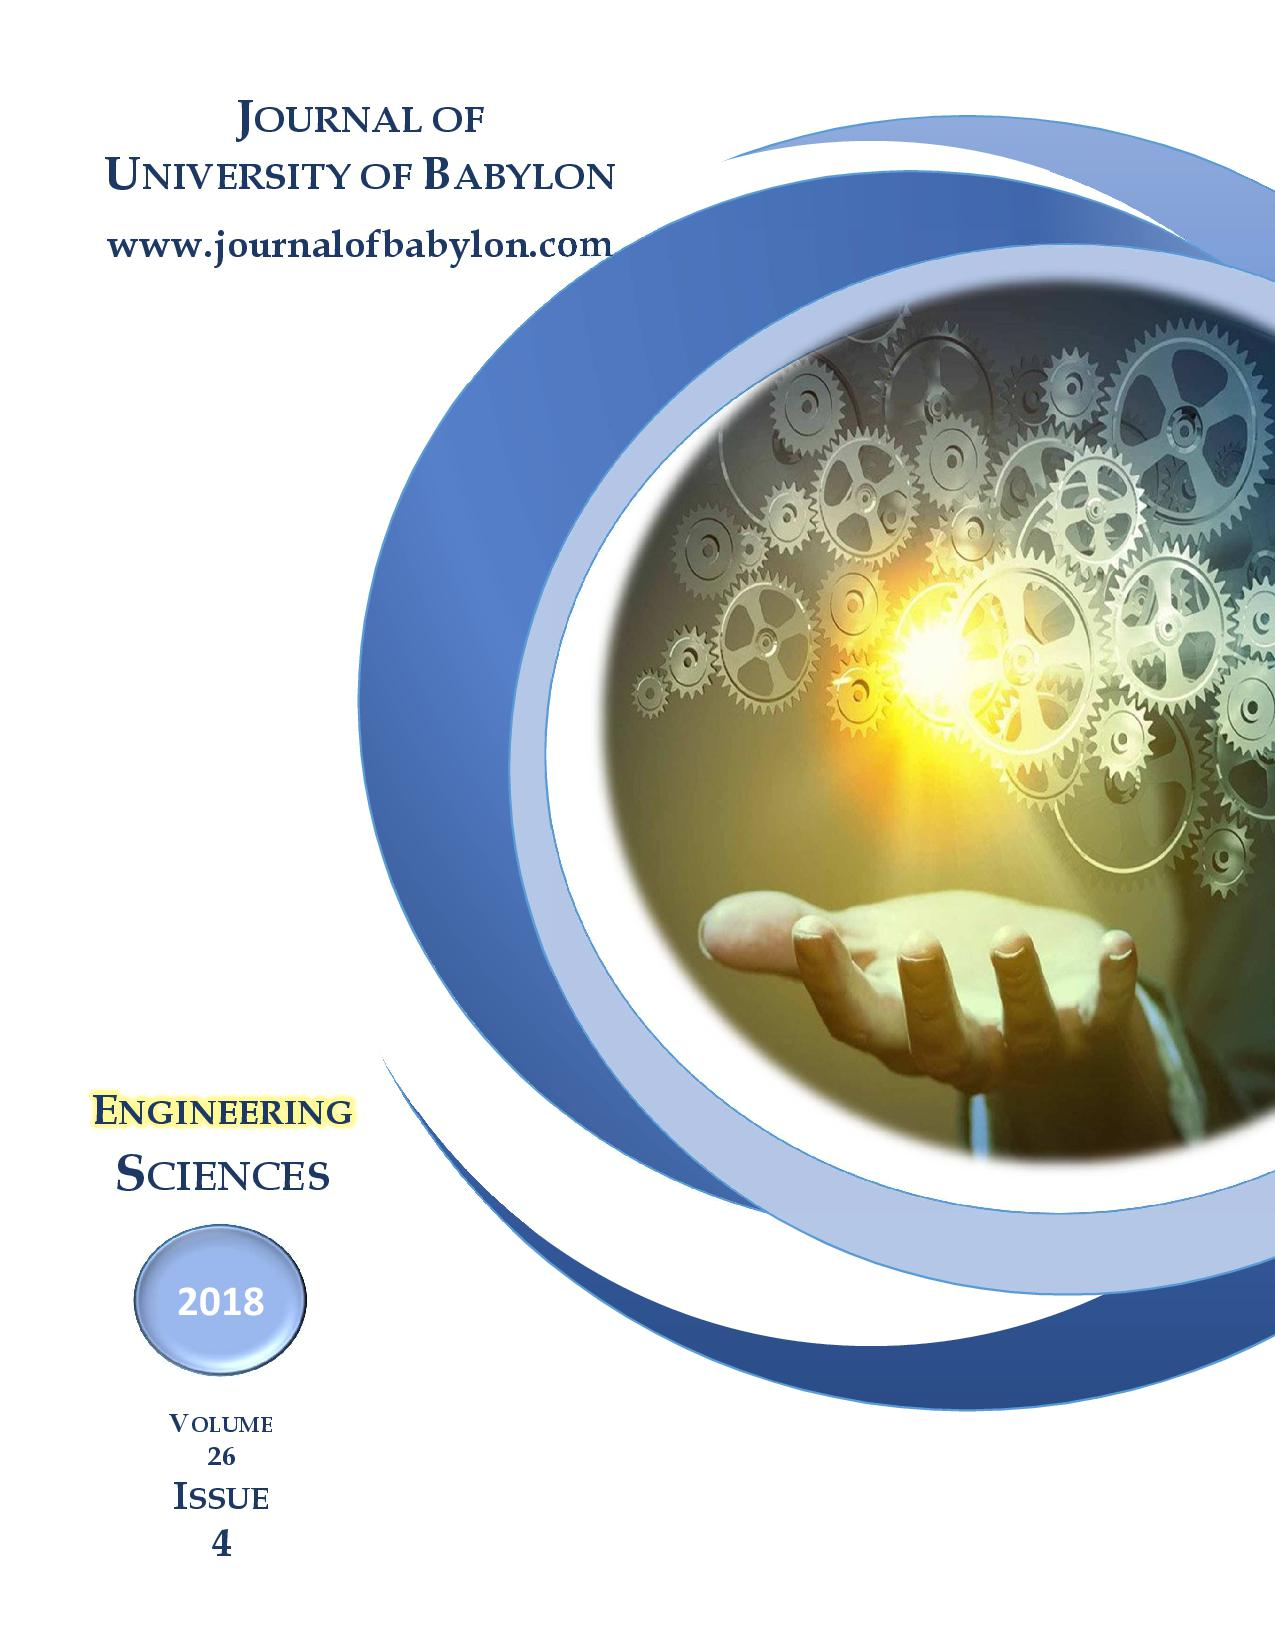 Integration Of The Assessment And Design Of Cellular Manufacturing System Journal Of University Of Babylon For Engineering Sciences